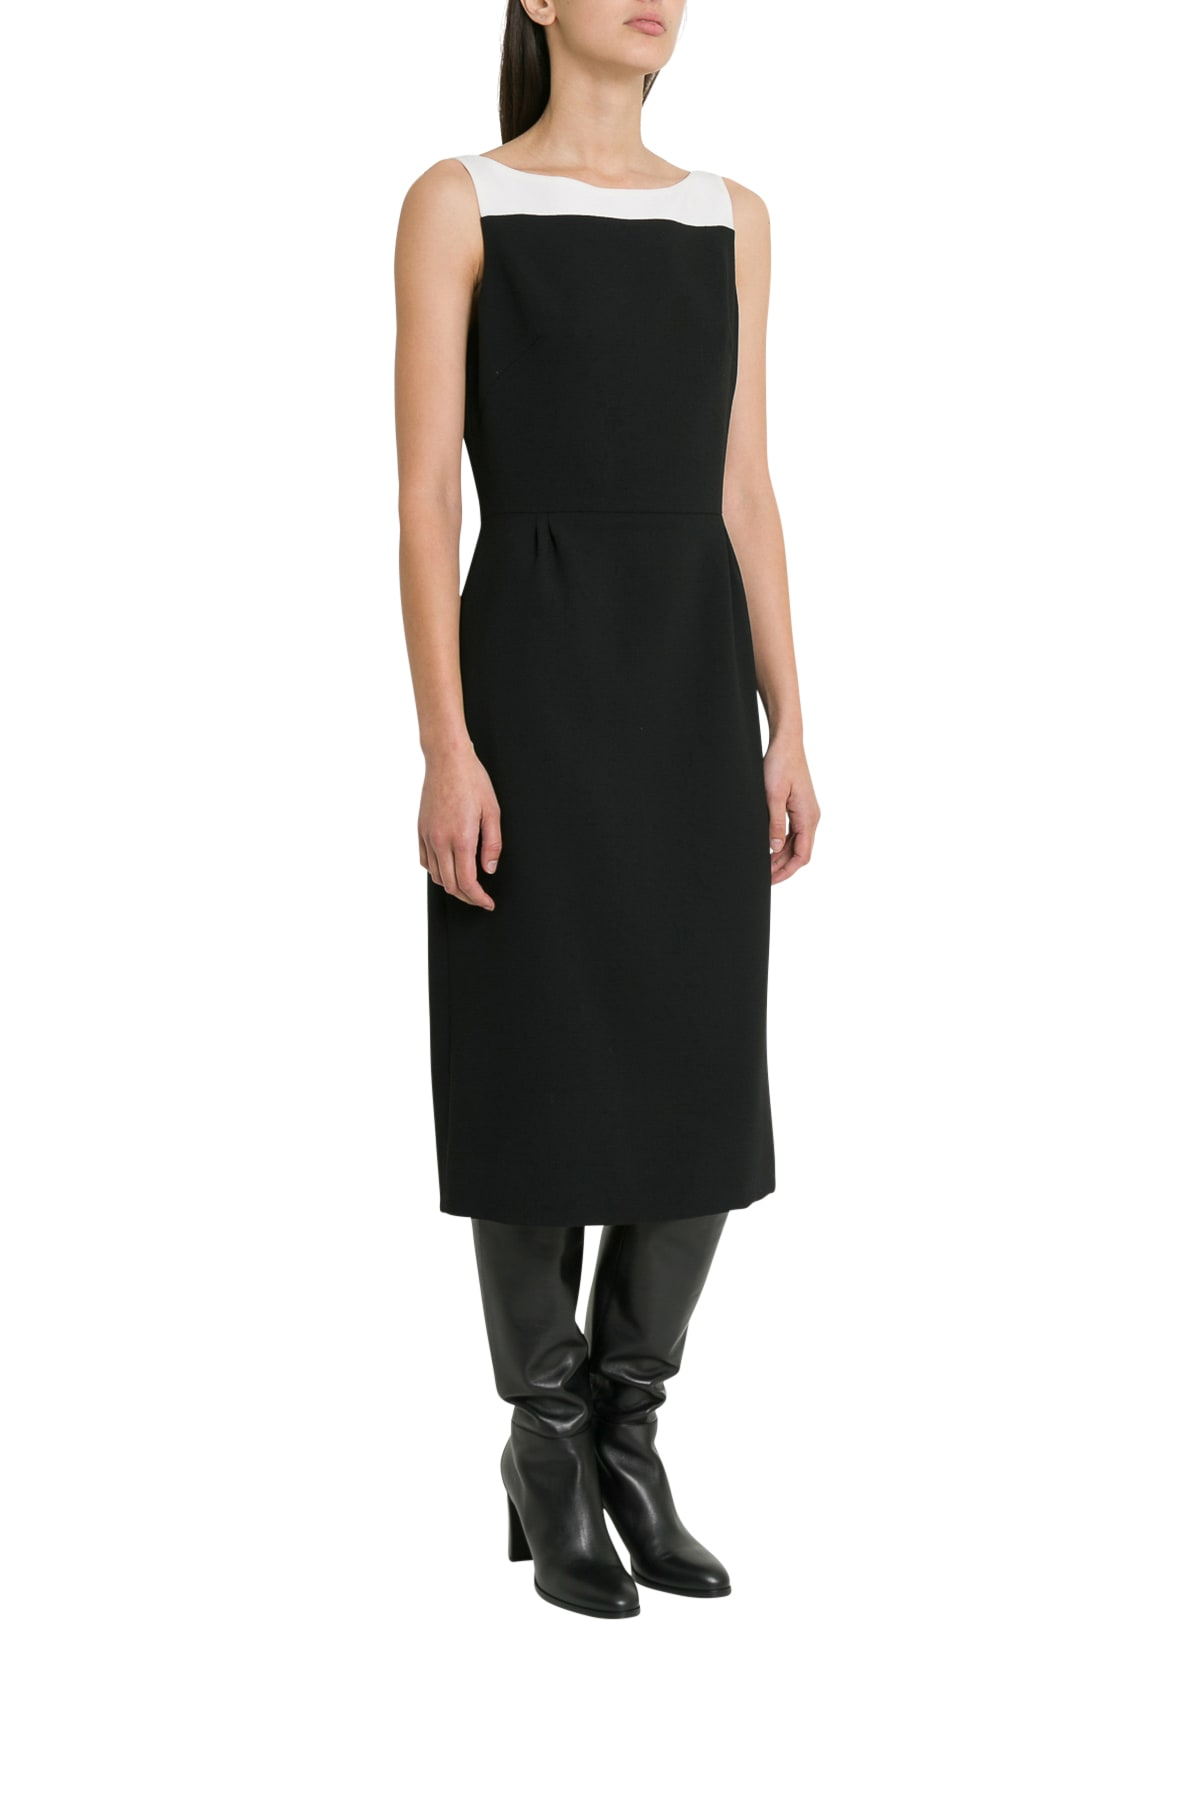 Buy Givenchy Colorblocked Wool Sleeveless Dress online, shop Givenchy with free shipping